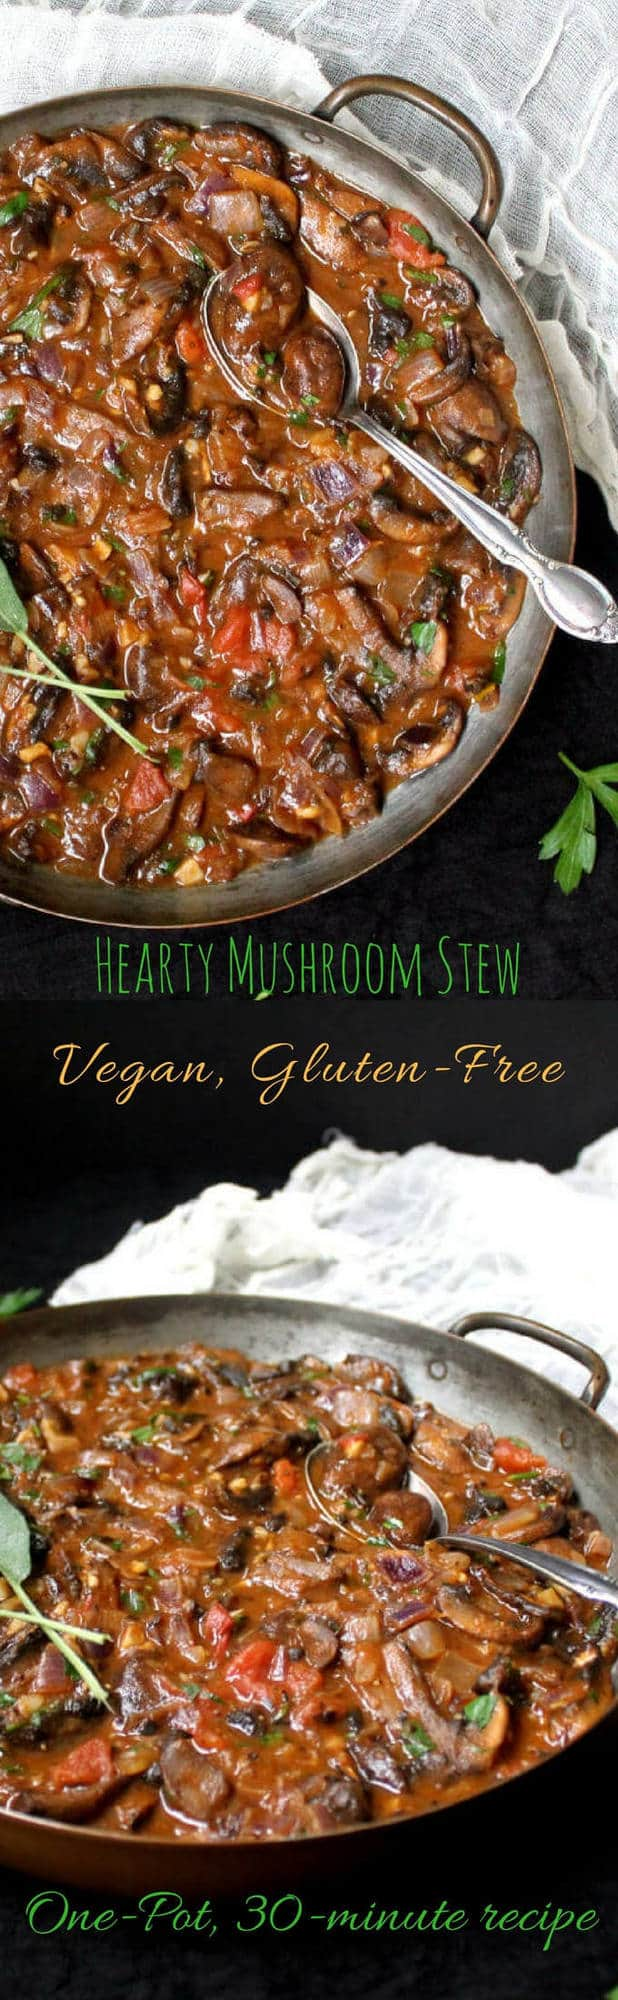 Hearty Vegan Mushroom Stew, 30-minute recipe - HolyCowVegan.net